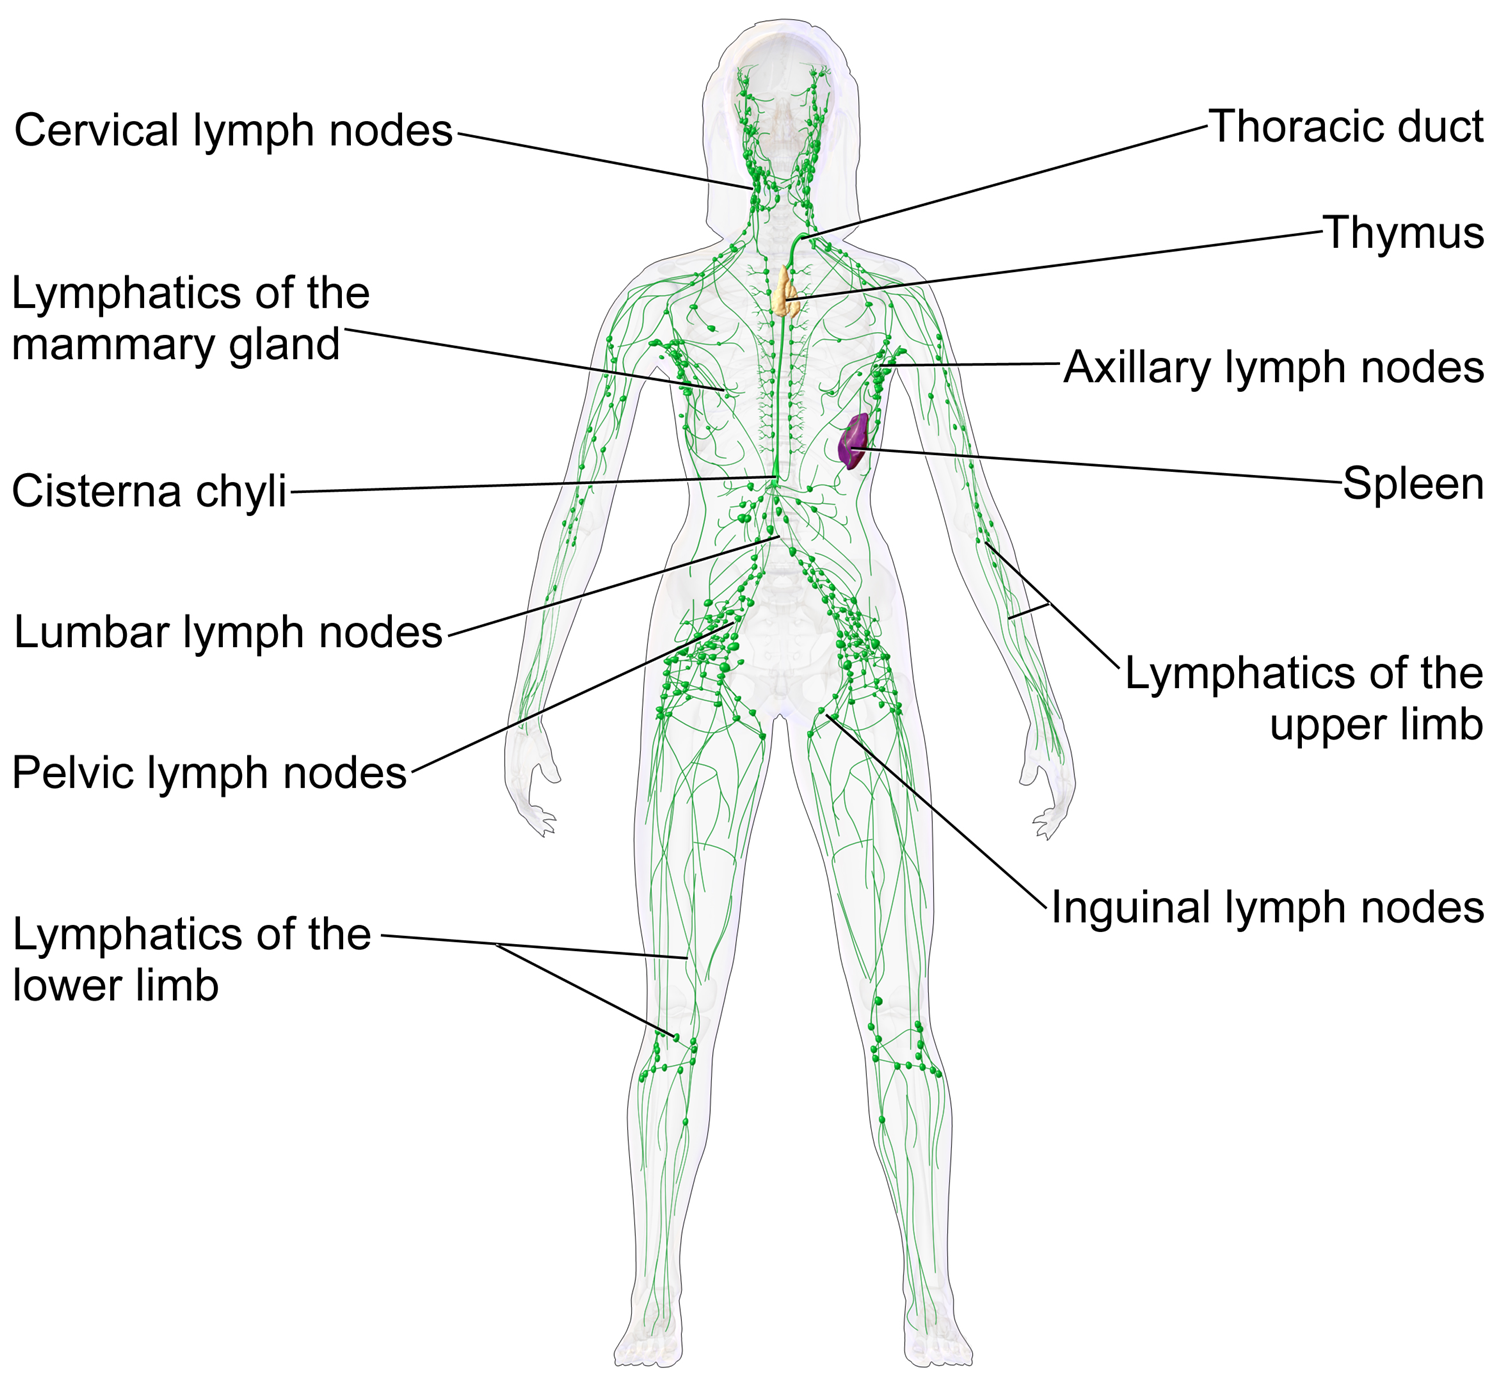 Lymphatic organs and vessels